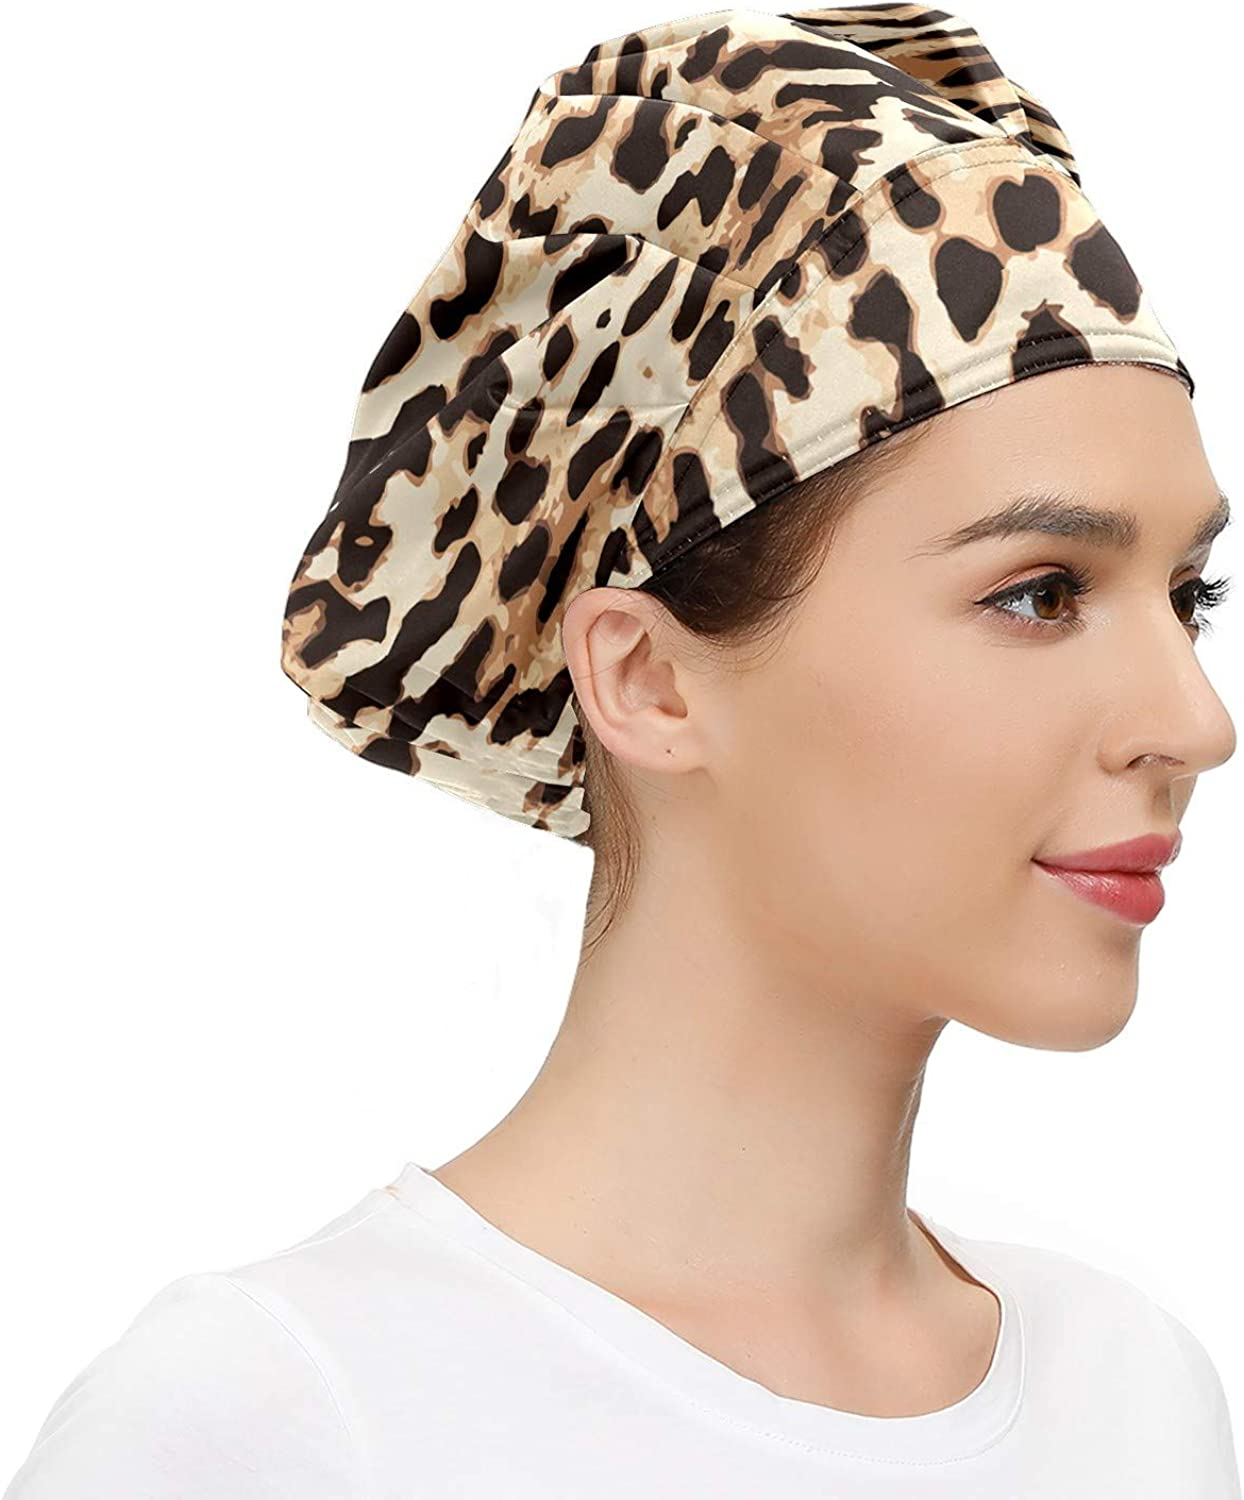 One Size Fits All 50 Cent Polyester Working Cap with Cotton Sweatband Adjustable Women /& Men Universe Print Hat